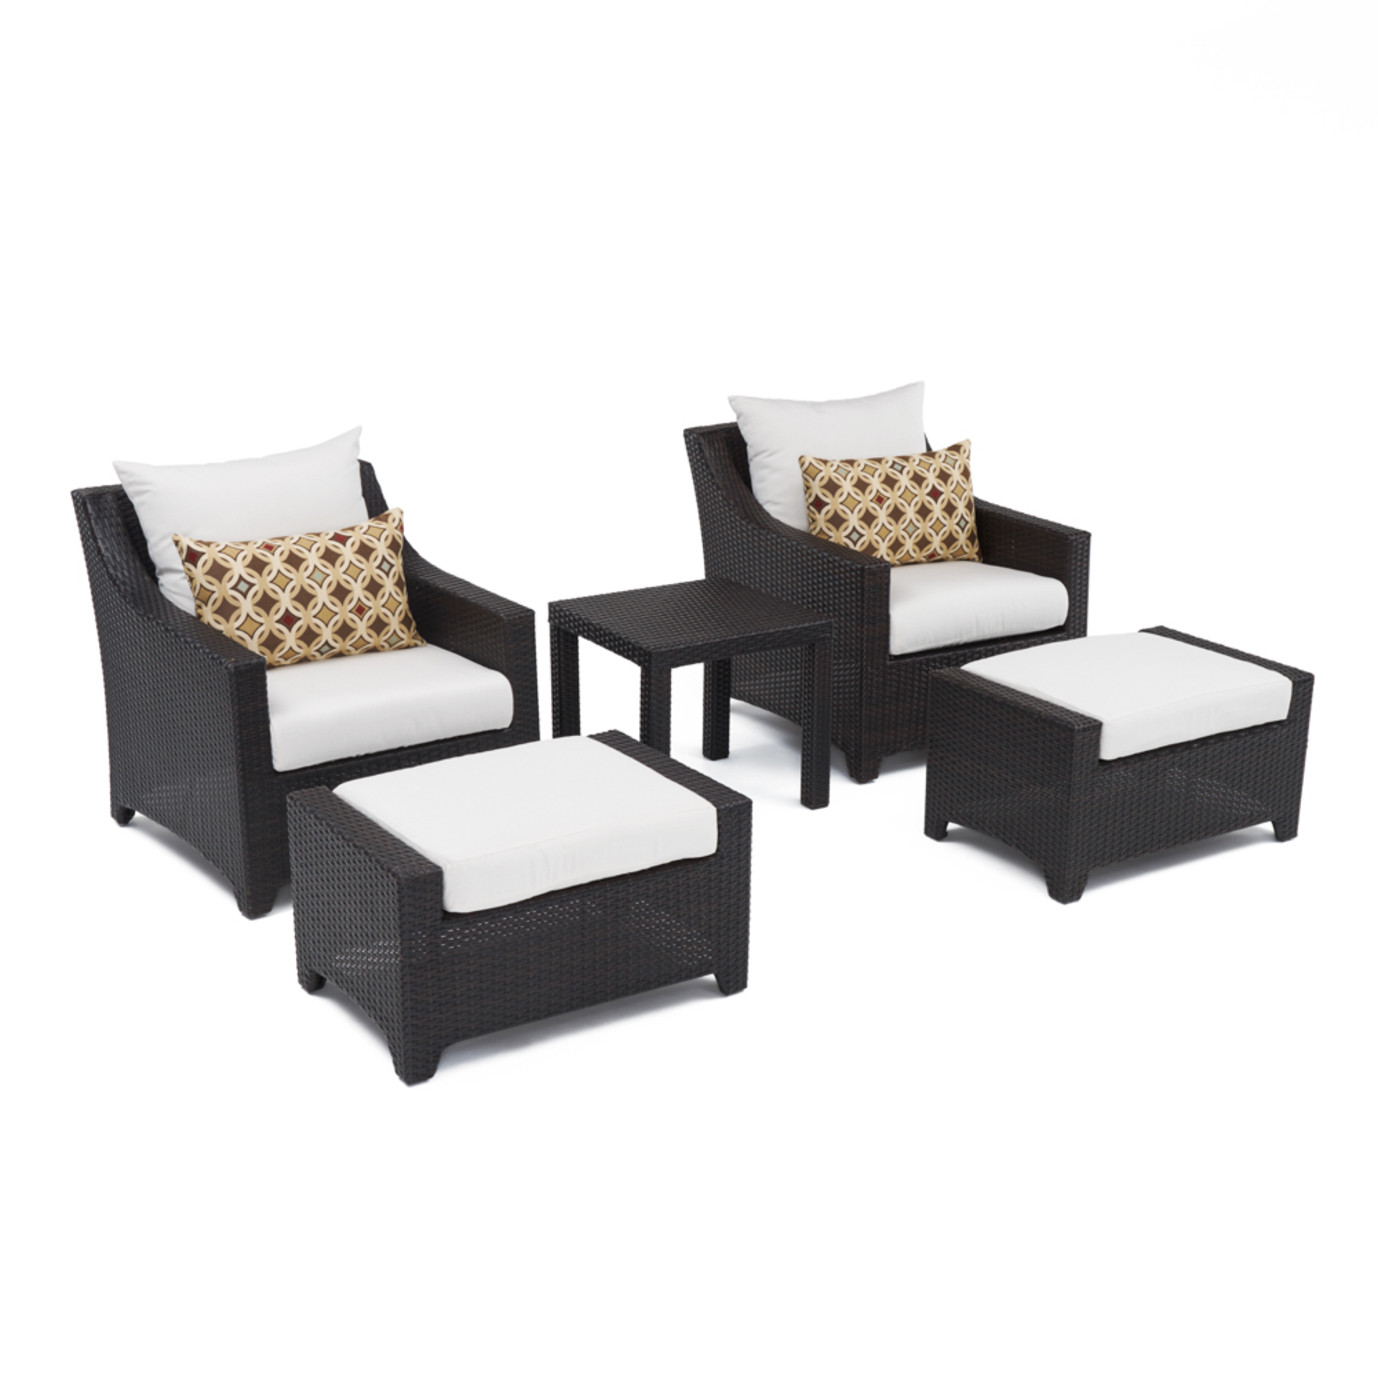 Deco™ 20 Piece Outdoor Estate Set - Moroccan Cream